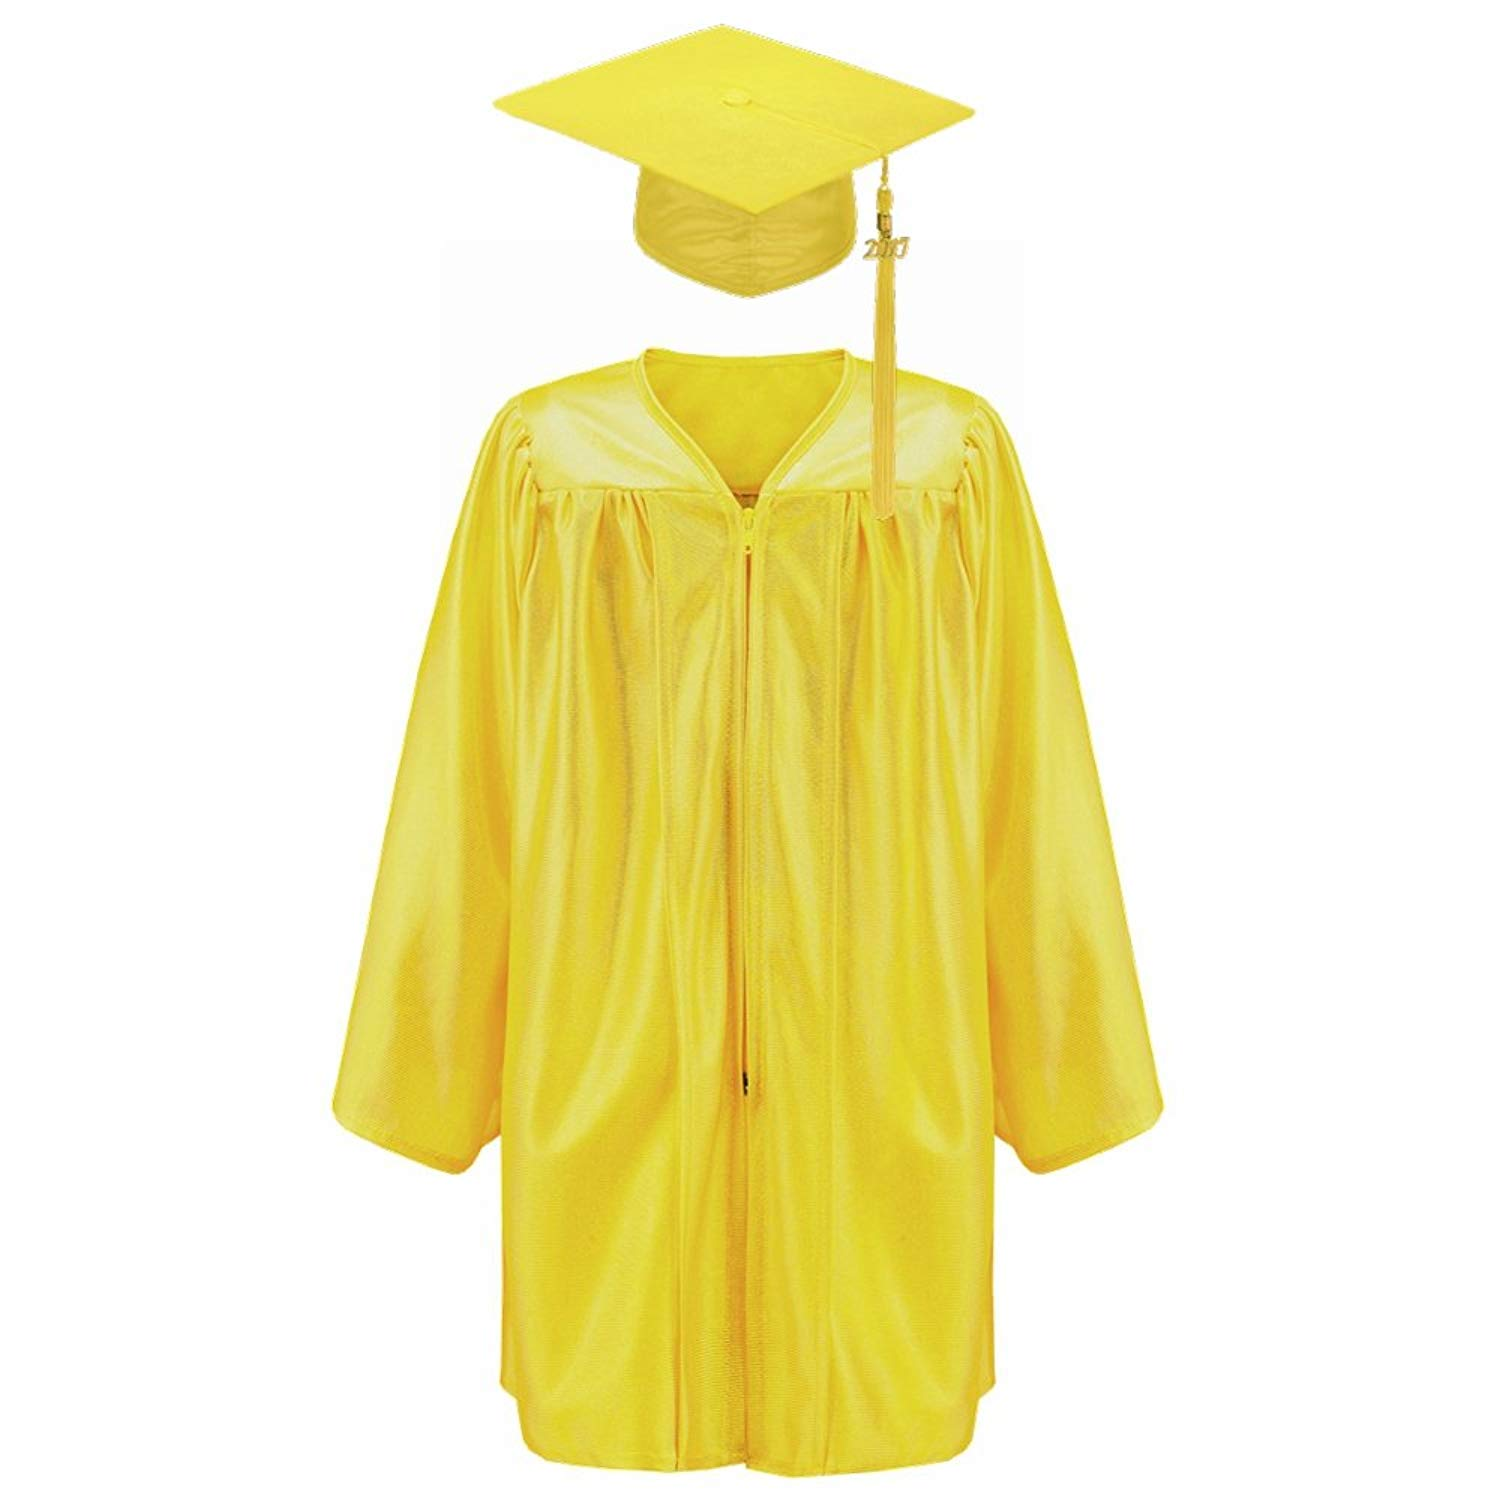 Robe Depot Unisex Shiny Kindergarten Graduation Gown Cap Tassel 2018 Package, Gold,M